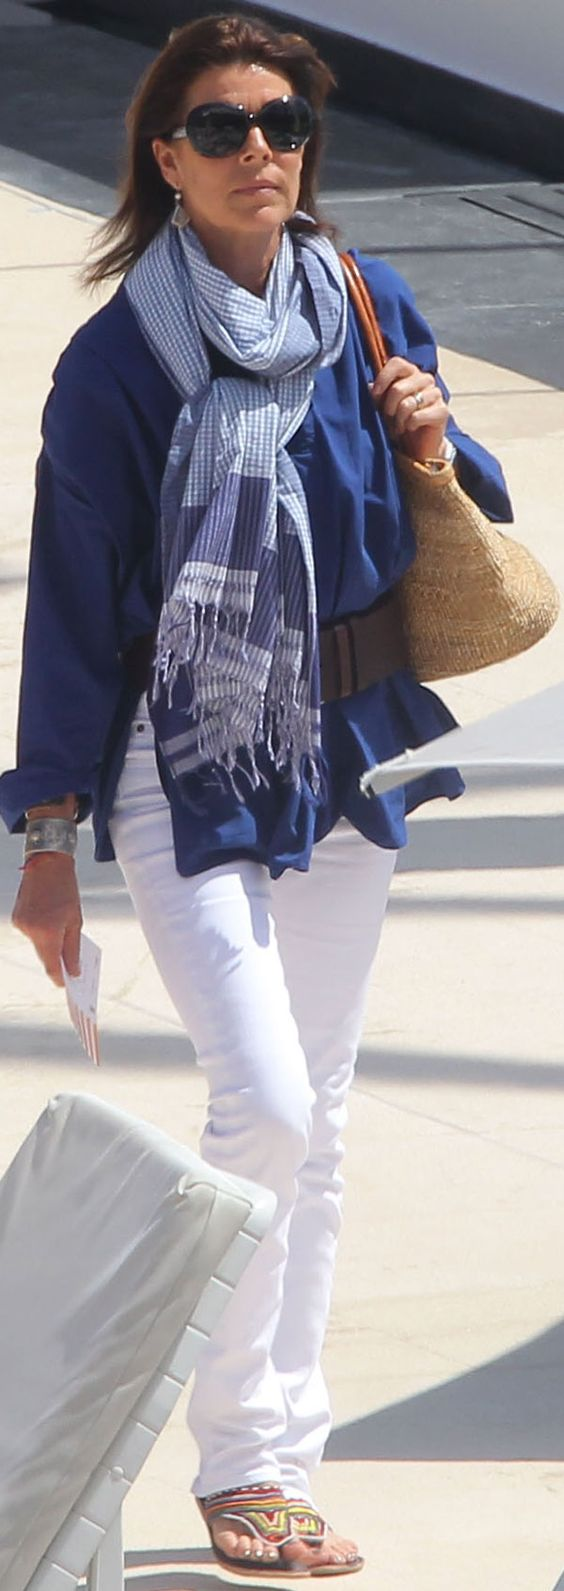 Maxi foulard.  Thank you, Princess Caroline, for a great idea for a spring outfit.